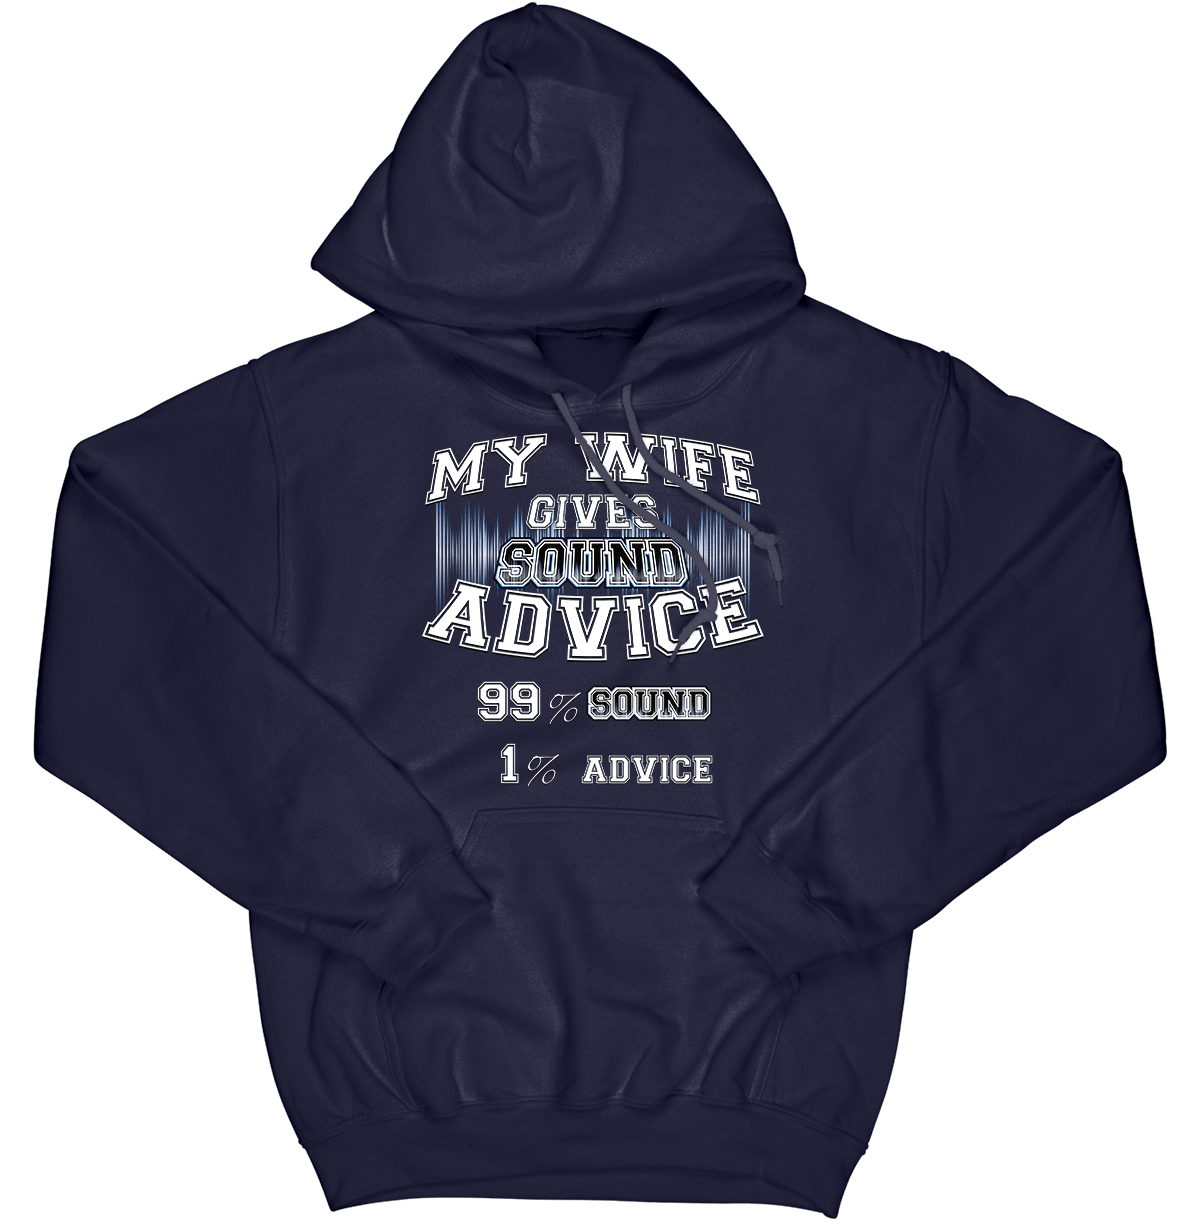 My Wife Gives Sound Advice Hoodie